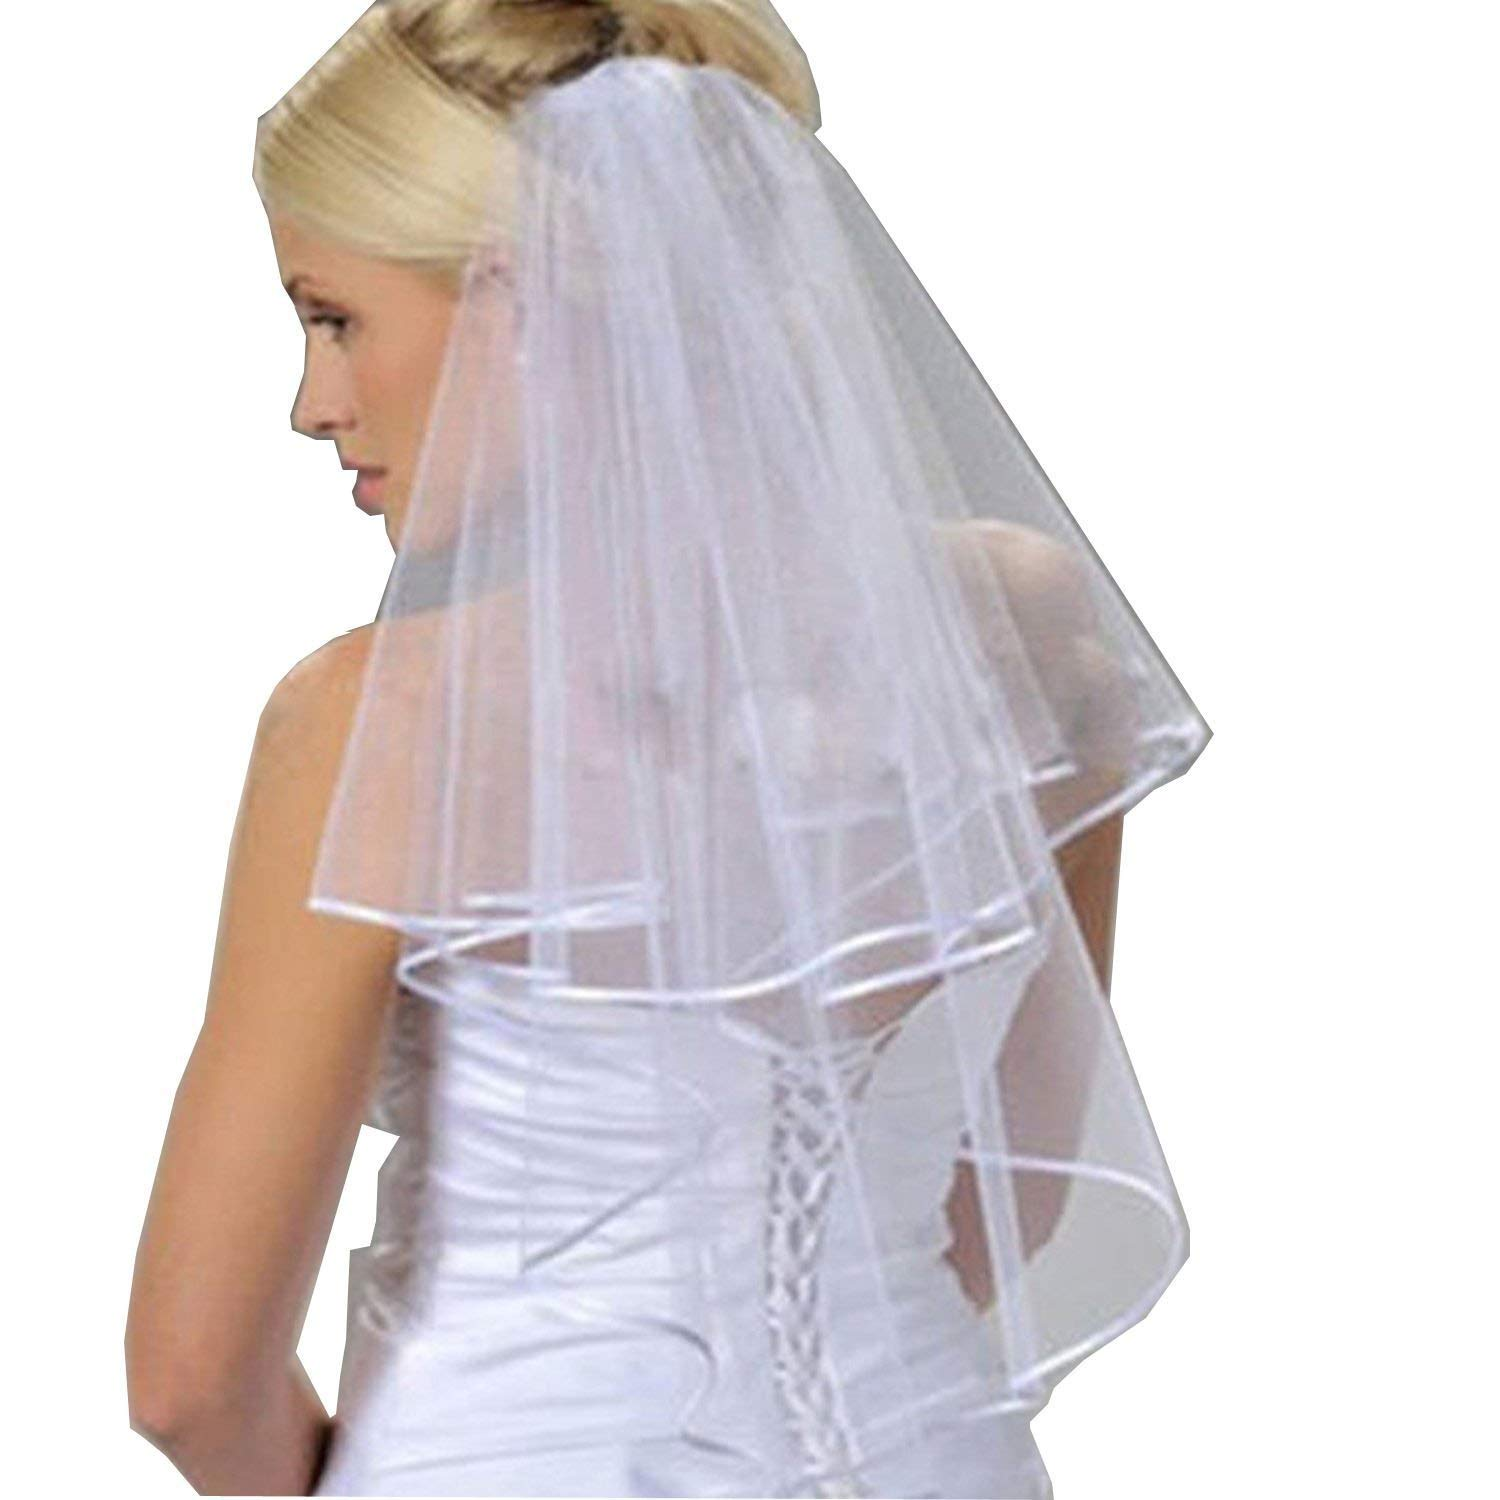 Charmingbridal Two Layer Ribbon Edge Short Wedding Bridal Veil with Comb (Ivory)